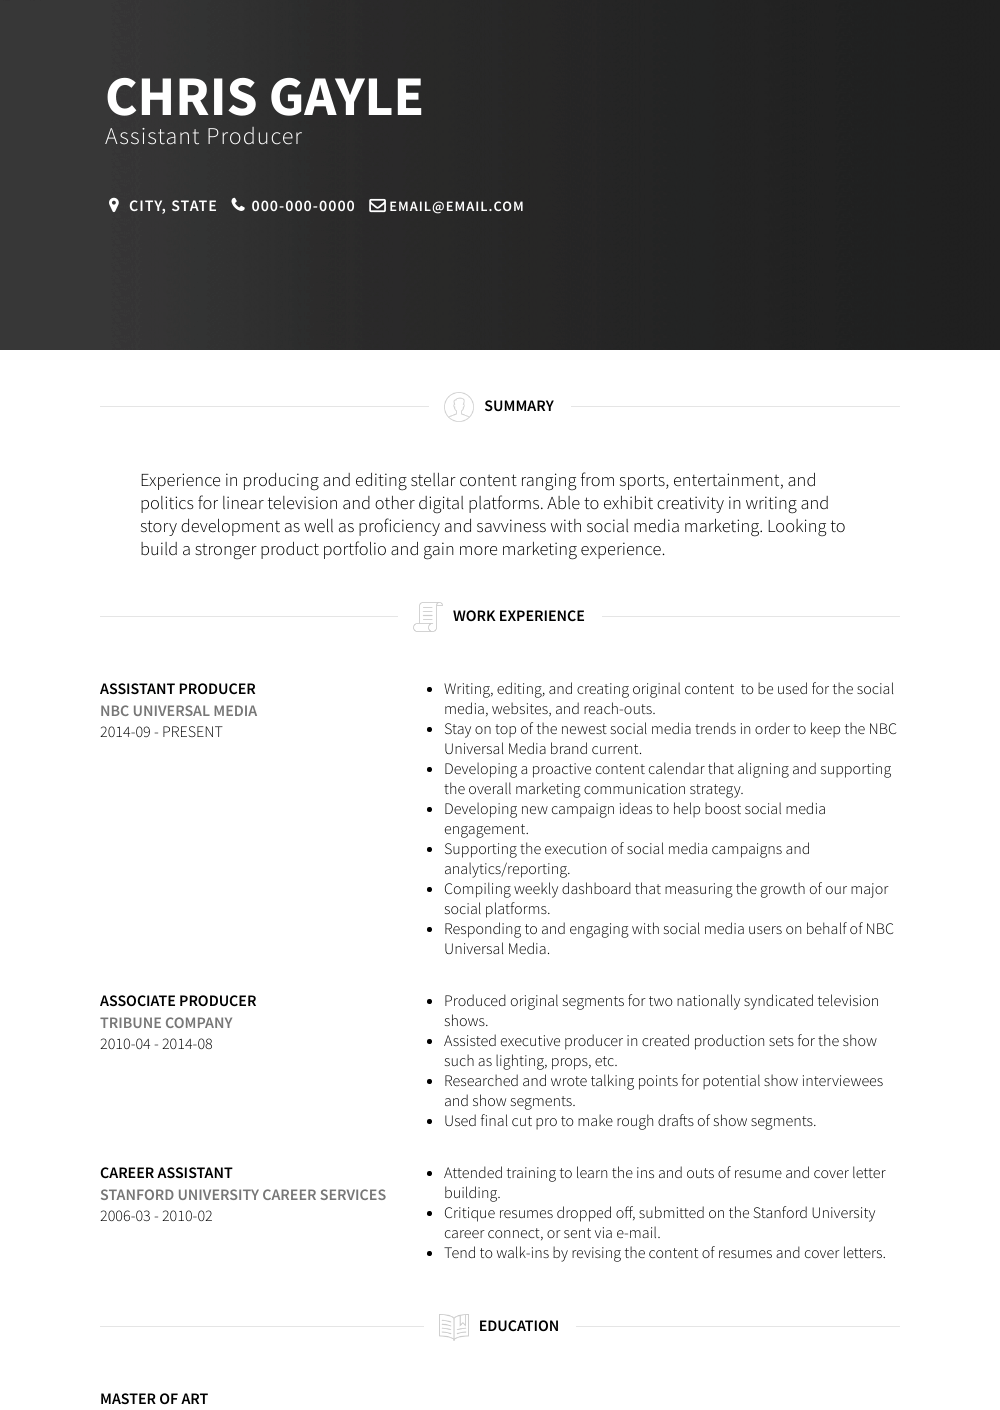 Assistant Producer Resume Sample and Template